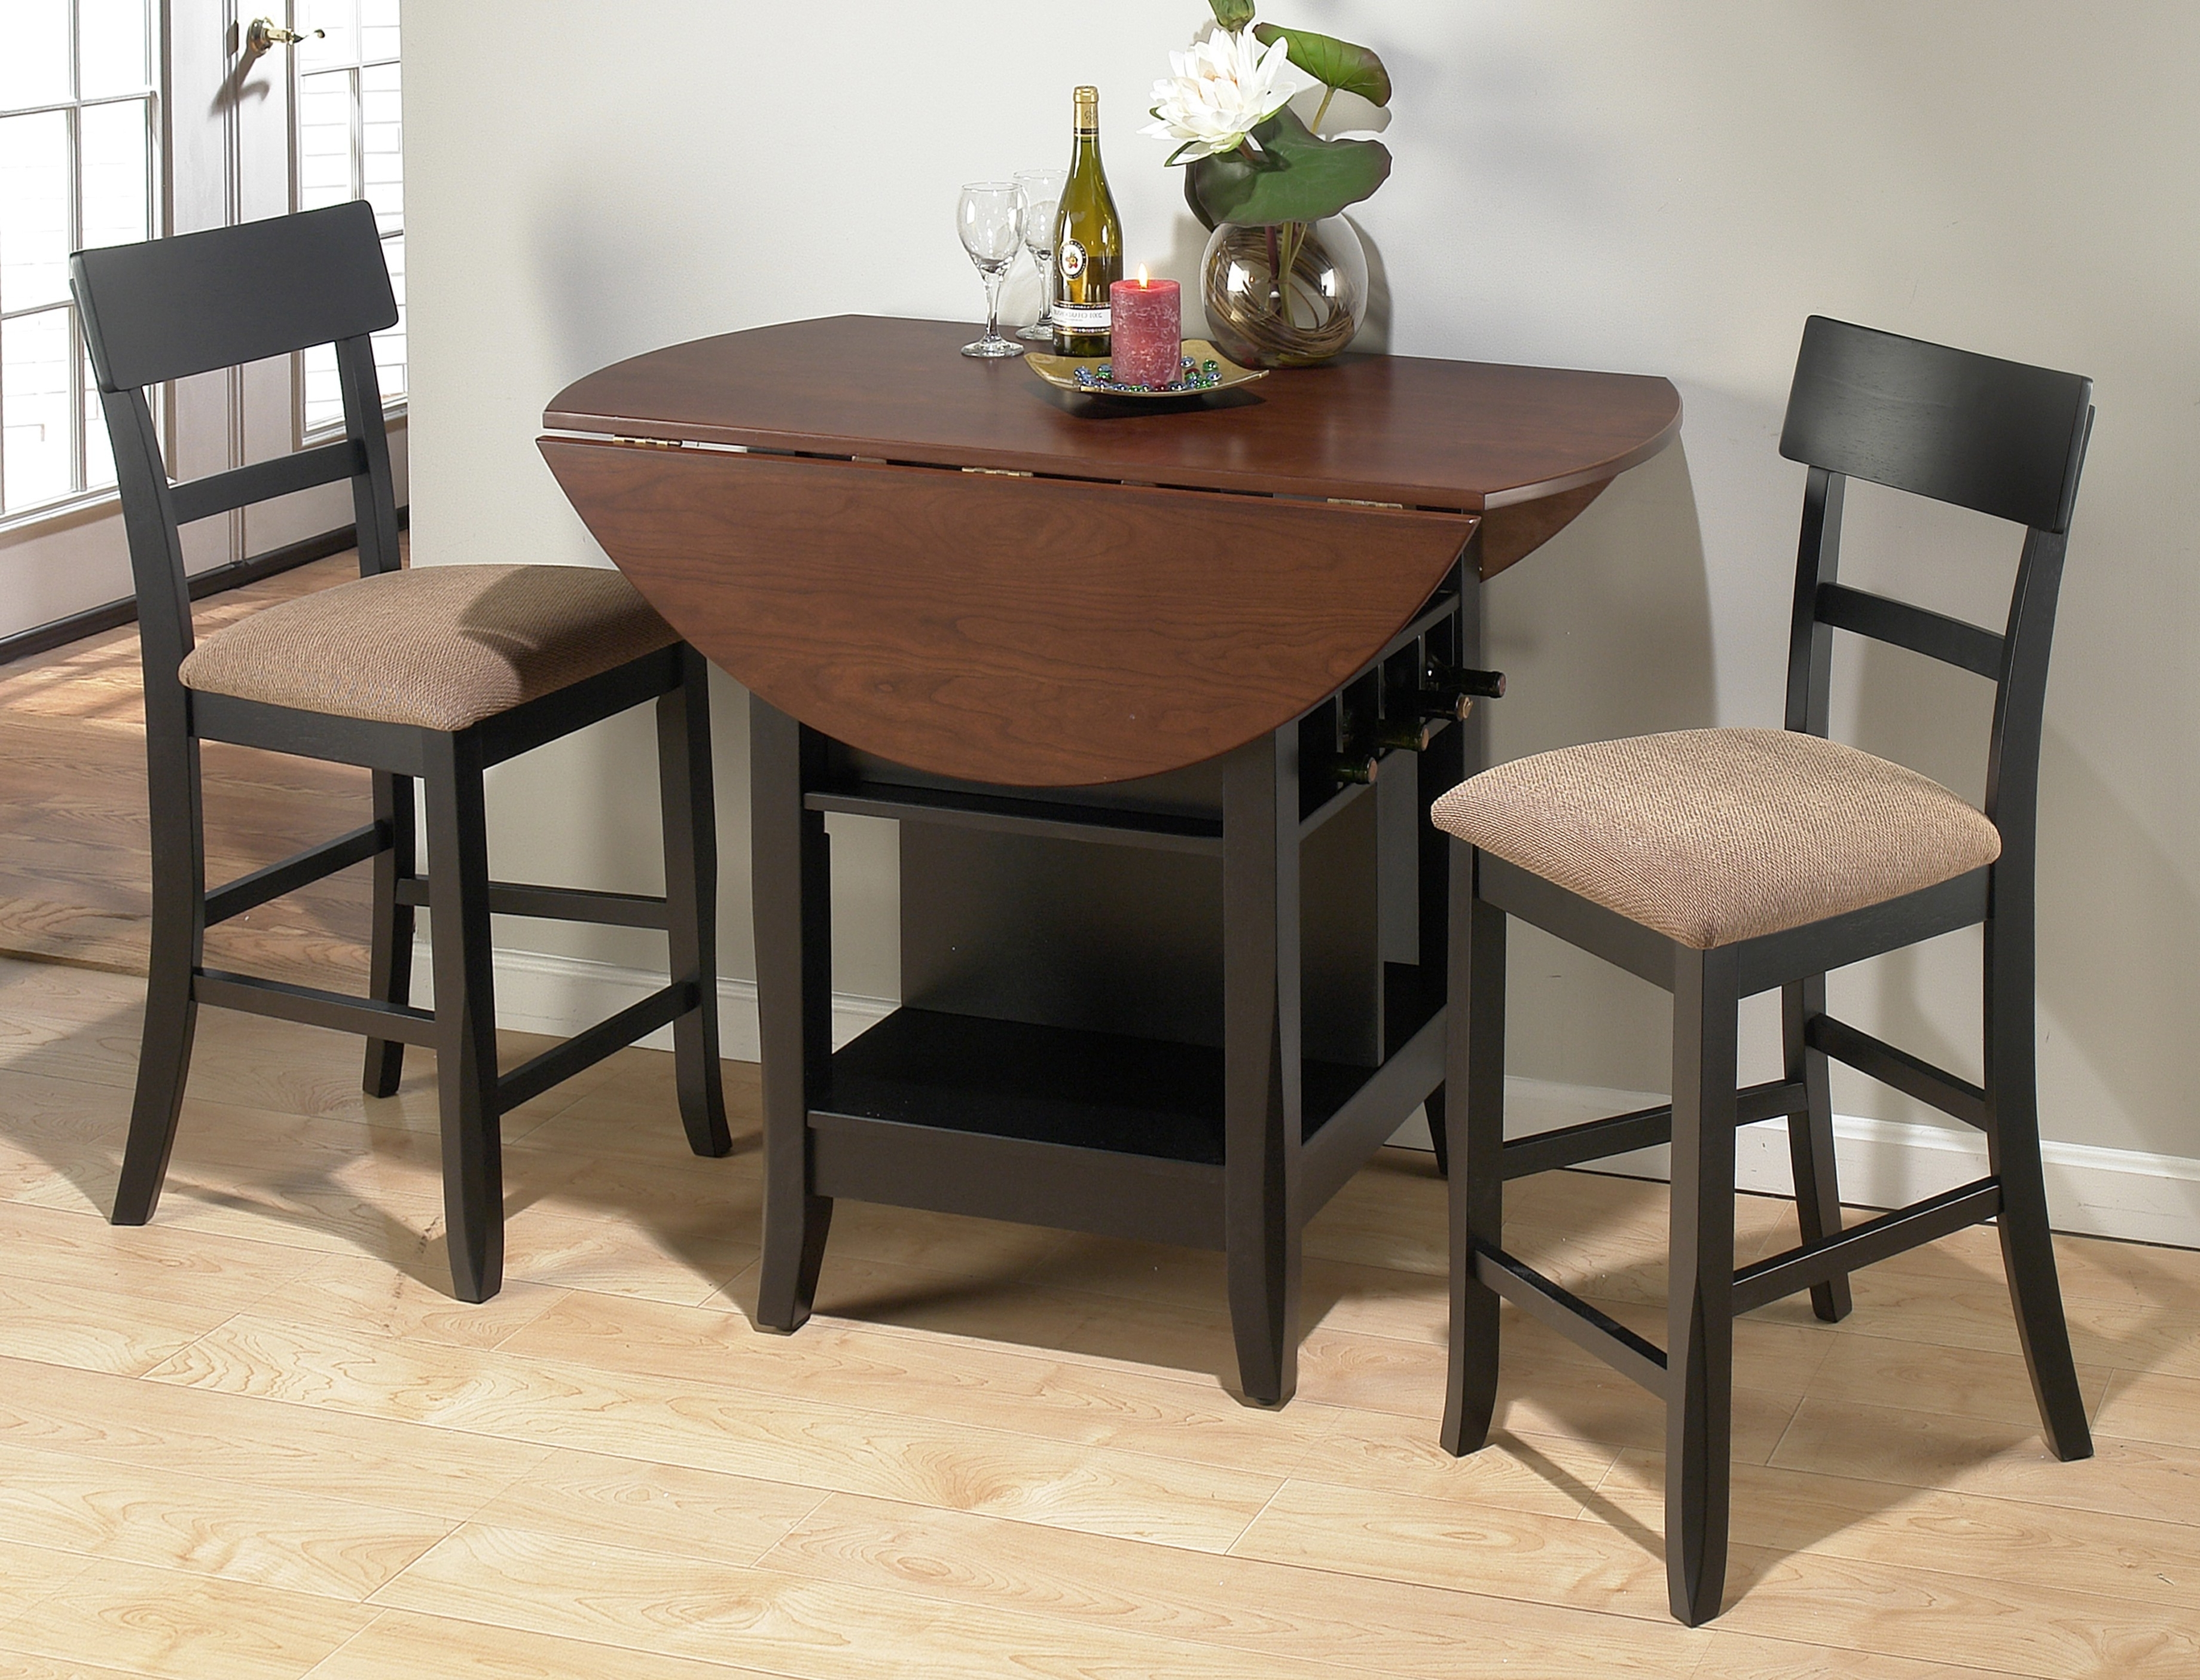 Well Liked Small Dark Wood Dining Tables Intended For Dining Room Small Dining Table Designs Kitchen Dining Sets For Small (View 4 of 25)